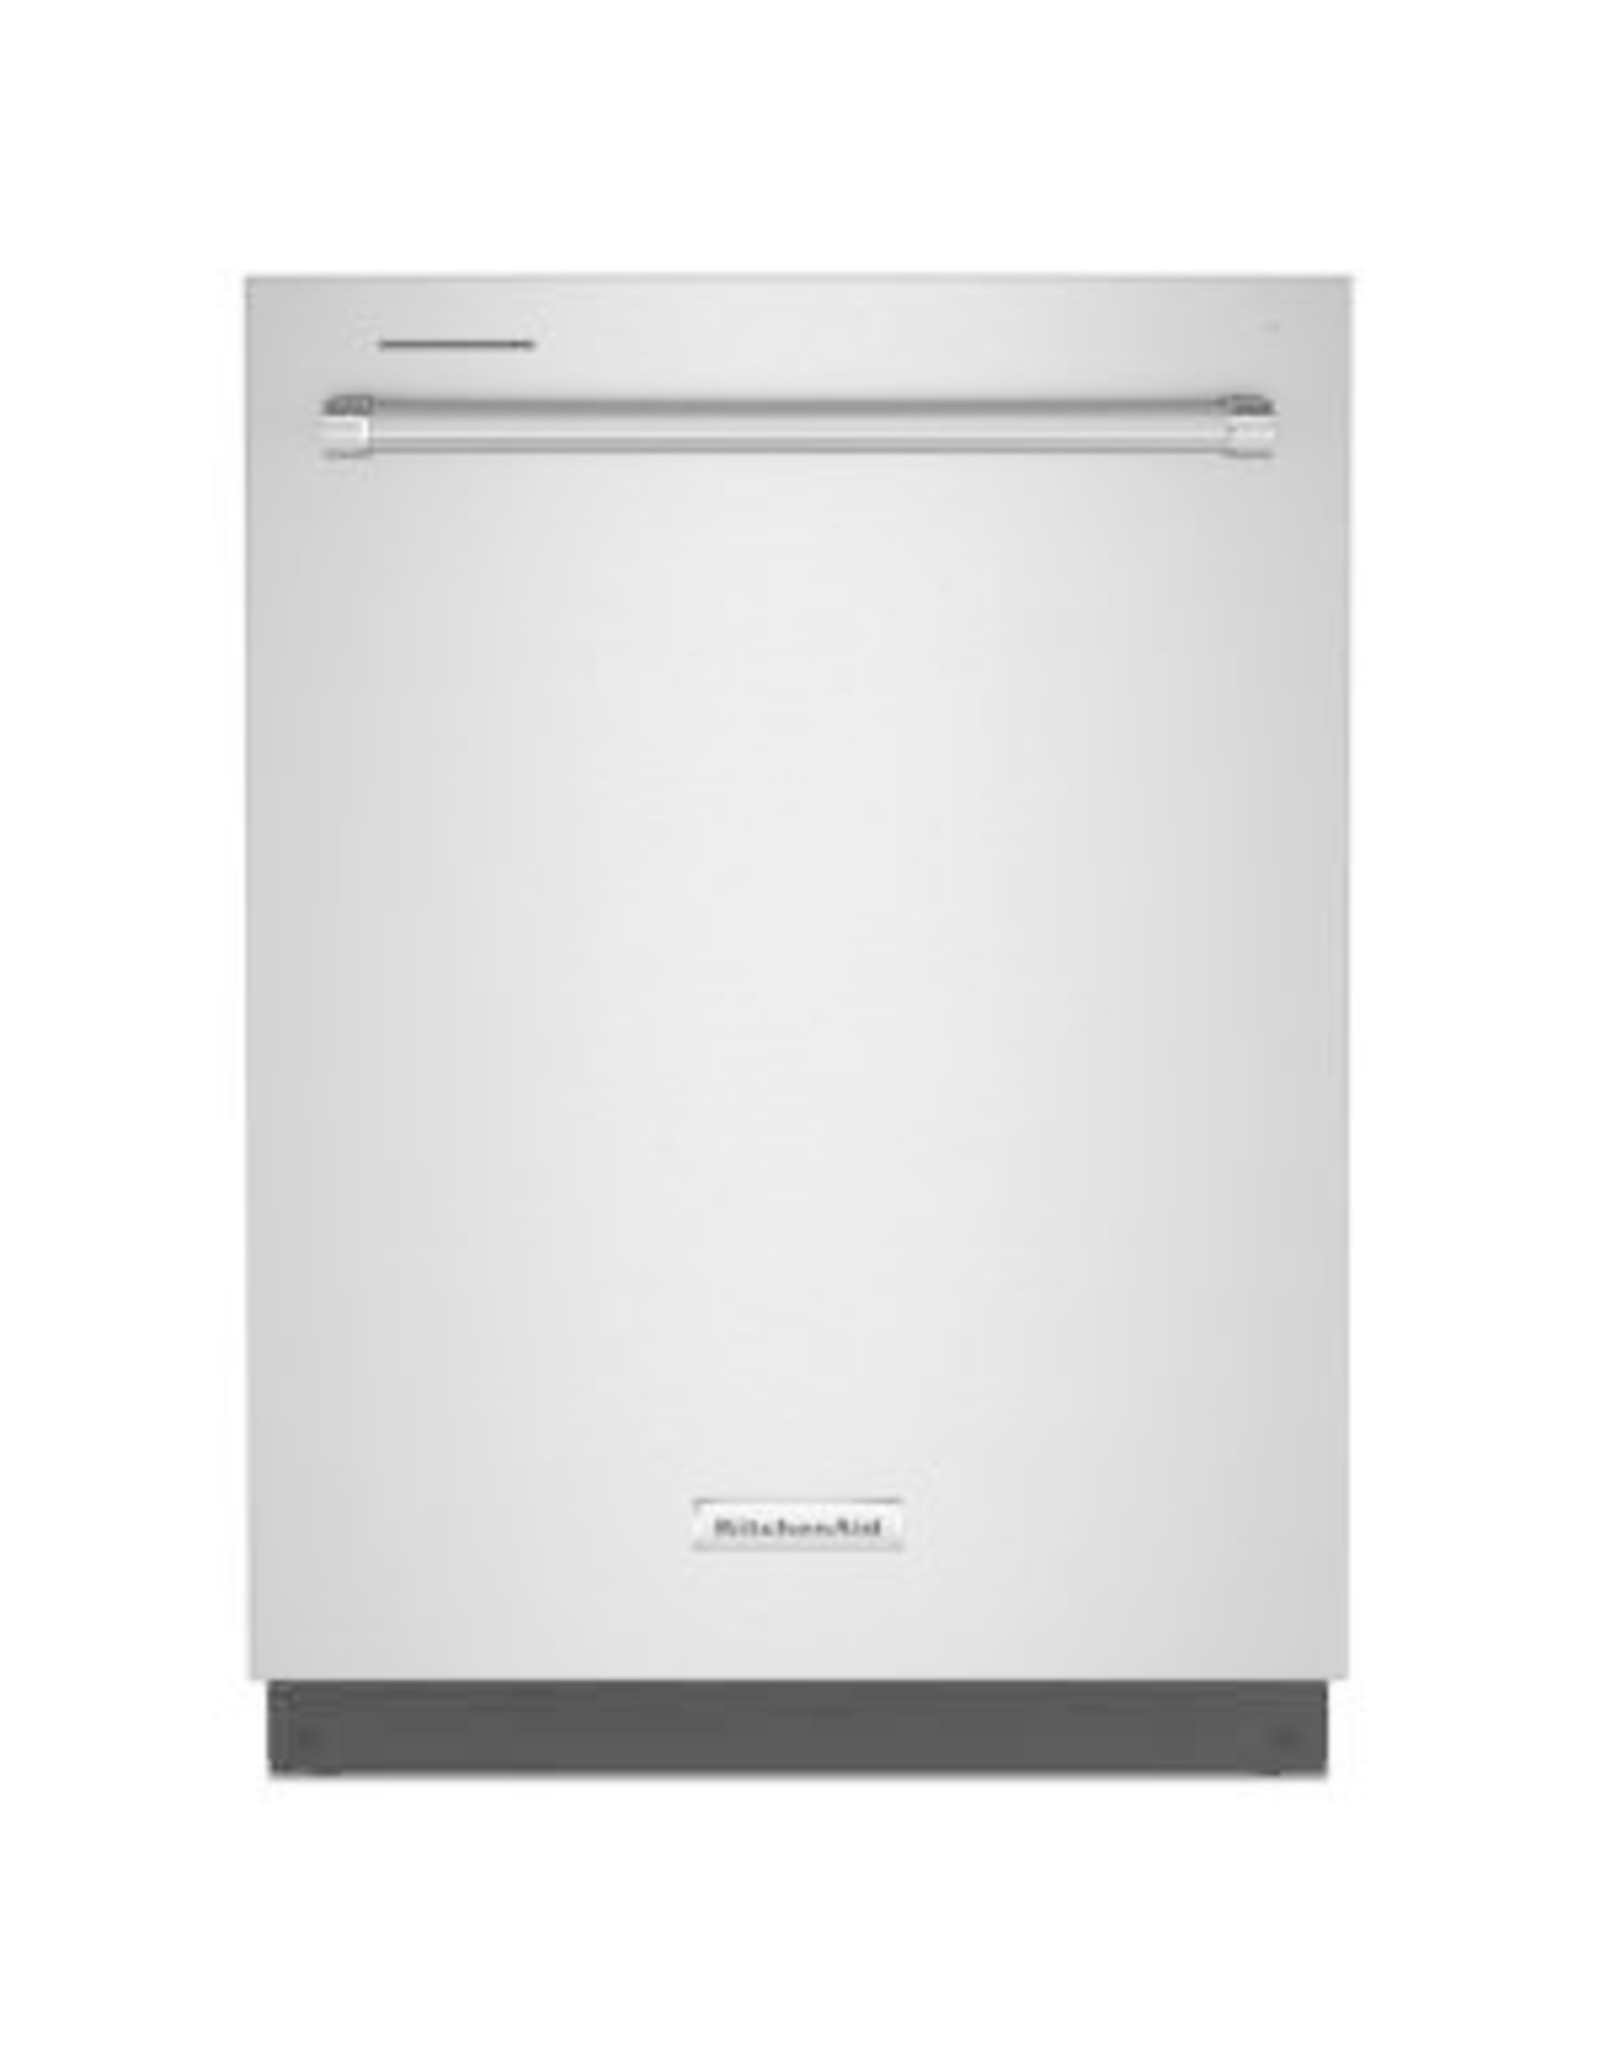 KDTM404KPS 24 in. Top Control Built-In Tall Tub Dishwasher in PrintShield Stainless with Stainless Steel Tub and Third Level Rack